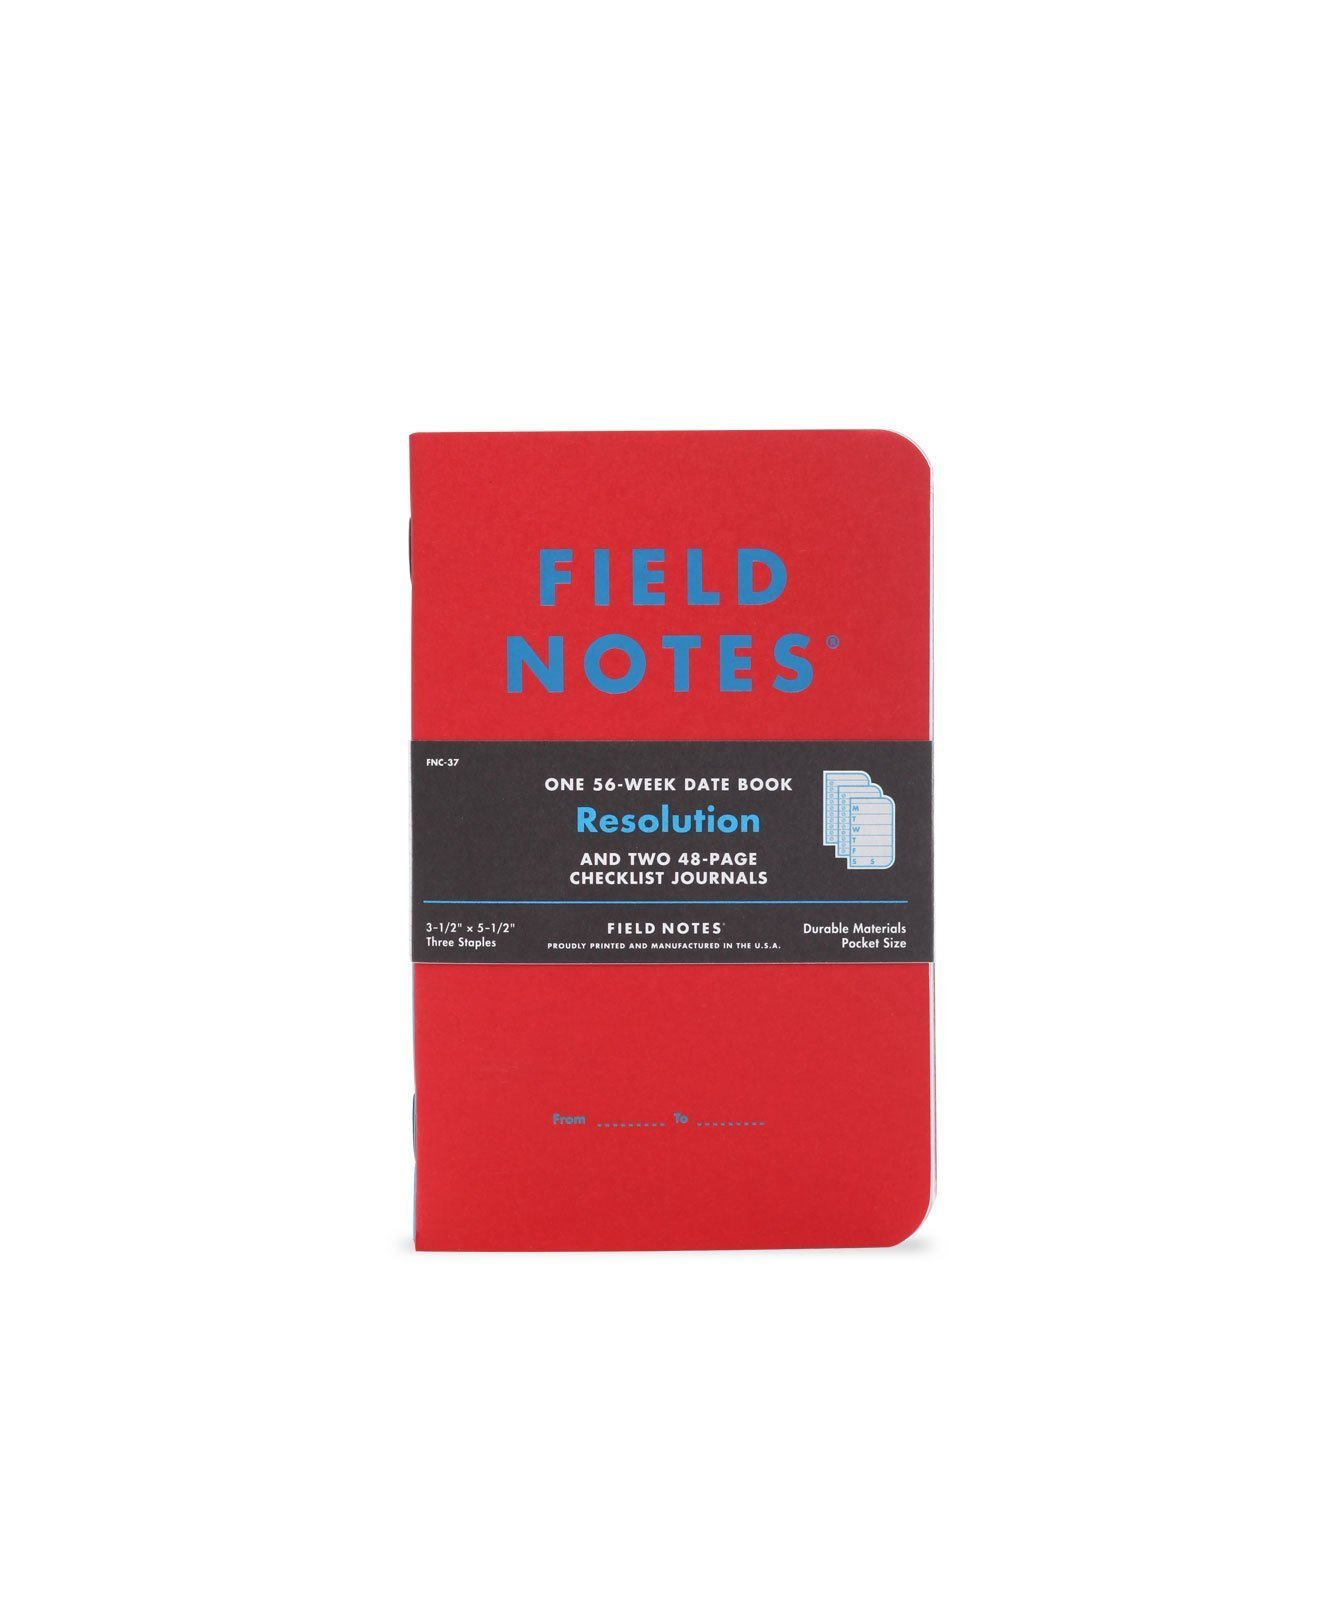 Field Notes Resolution Special Edition Memo Books, 2 Checklist Journals and 1 56-Week Date Book, (3-1/2'' × 5-1/2'') Winter 2017